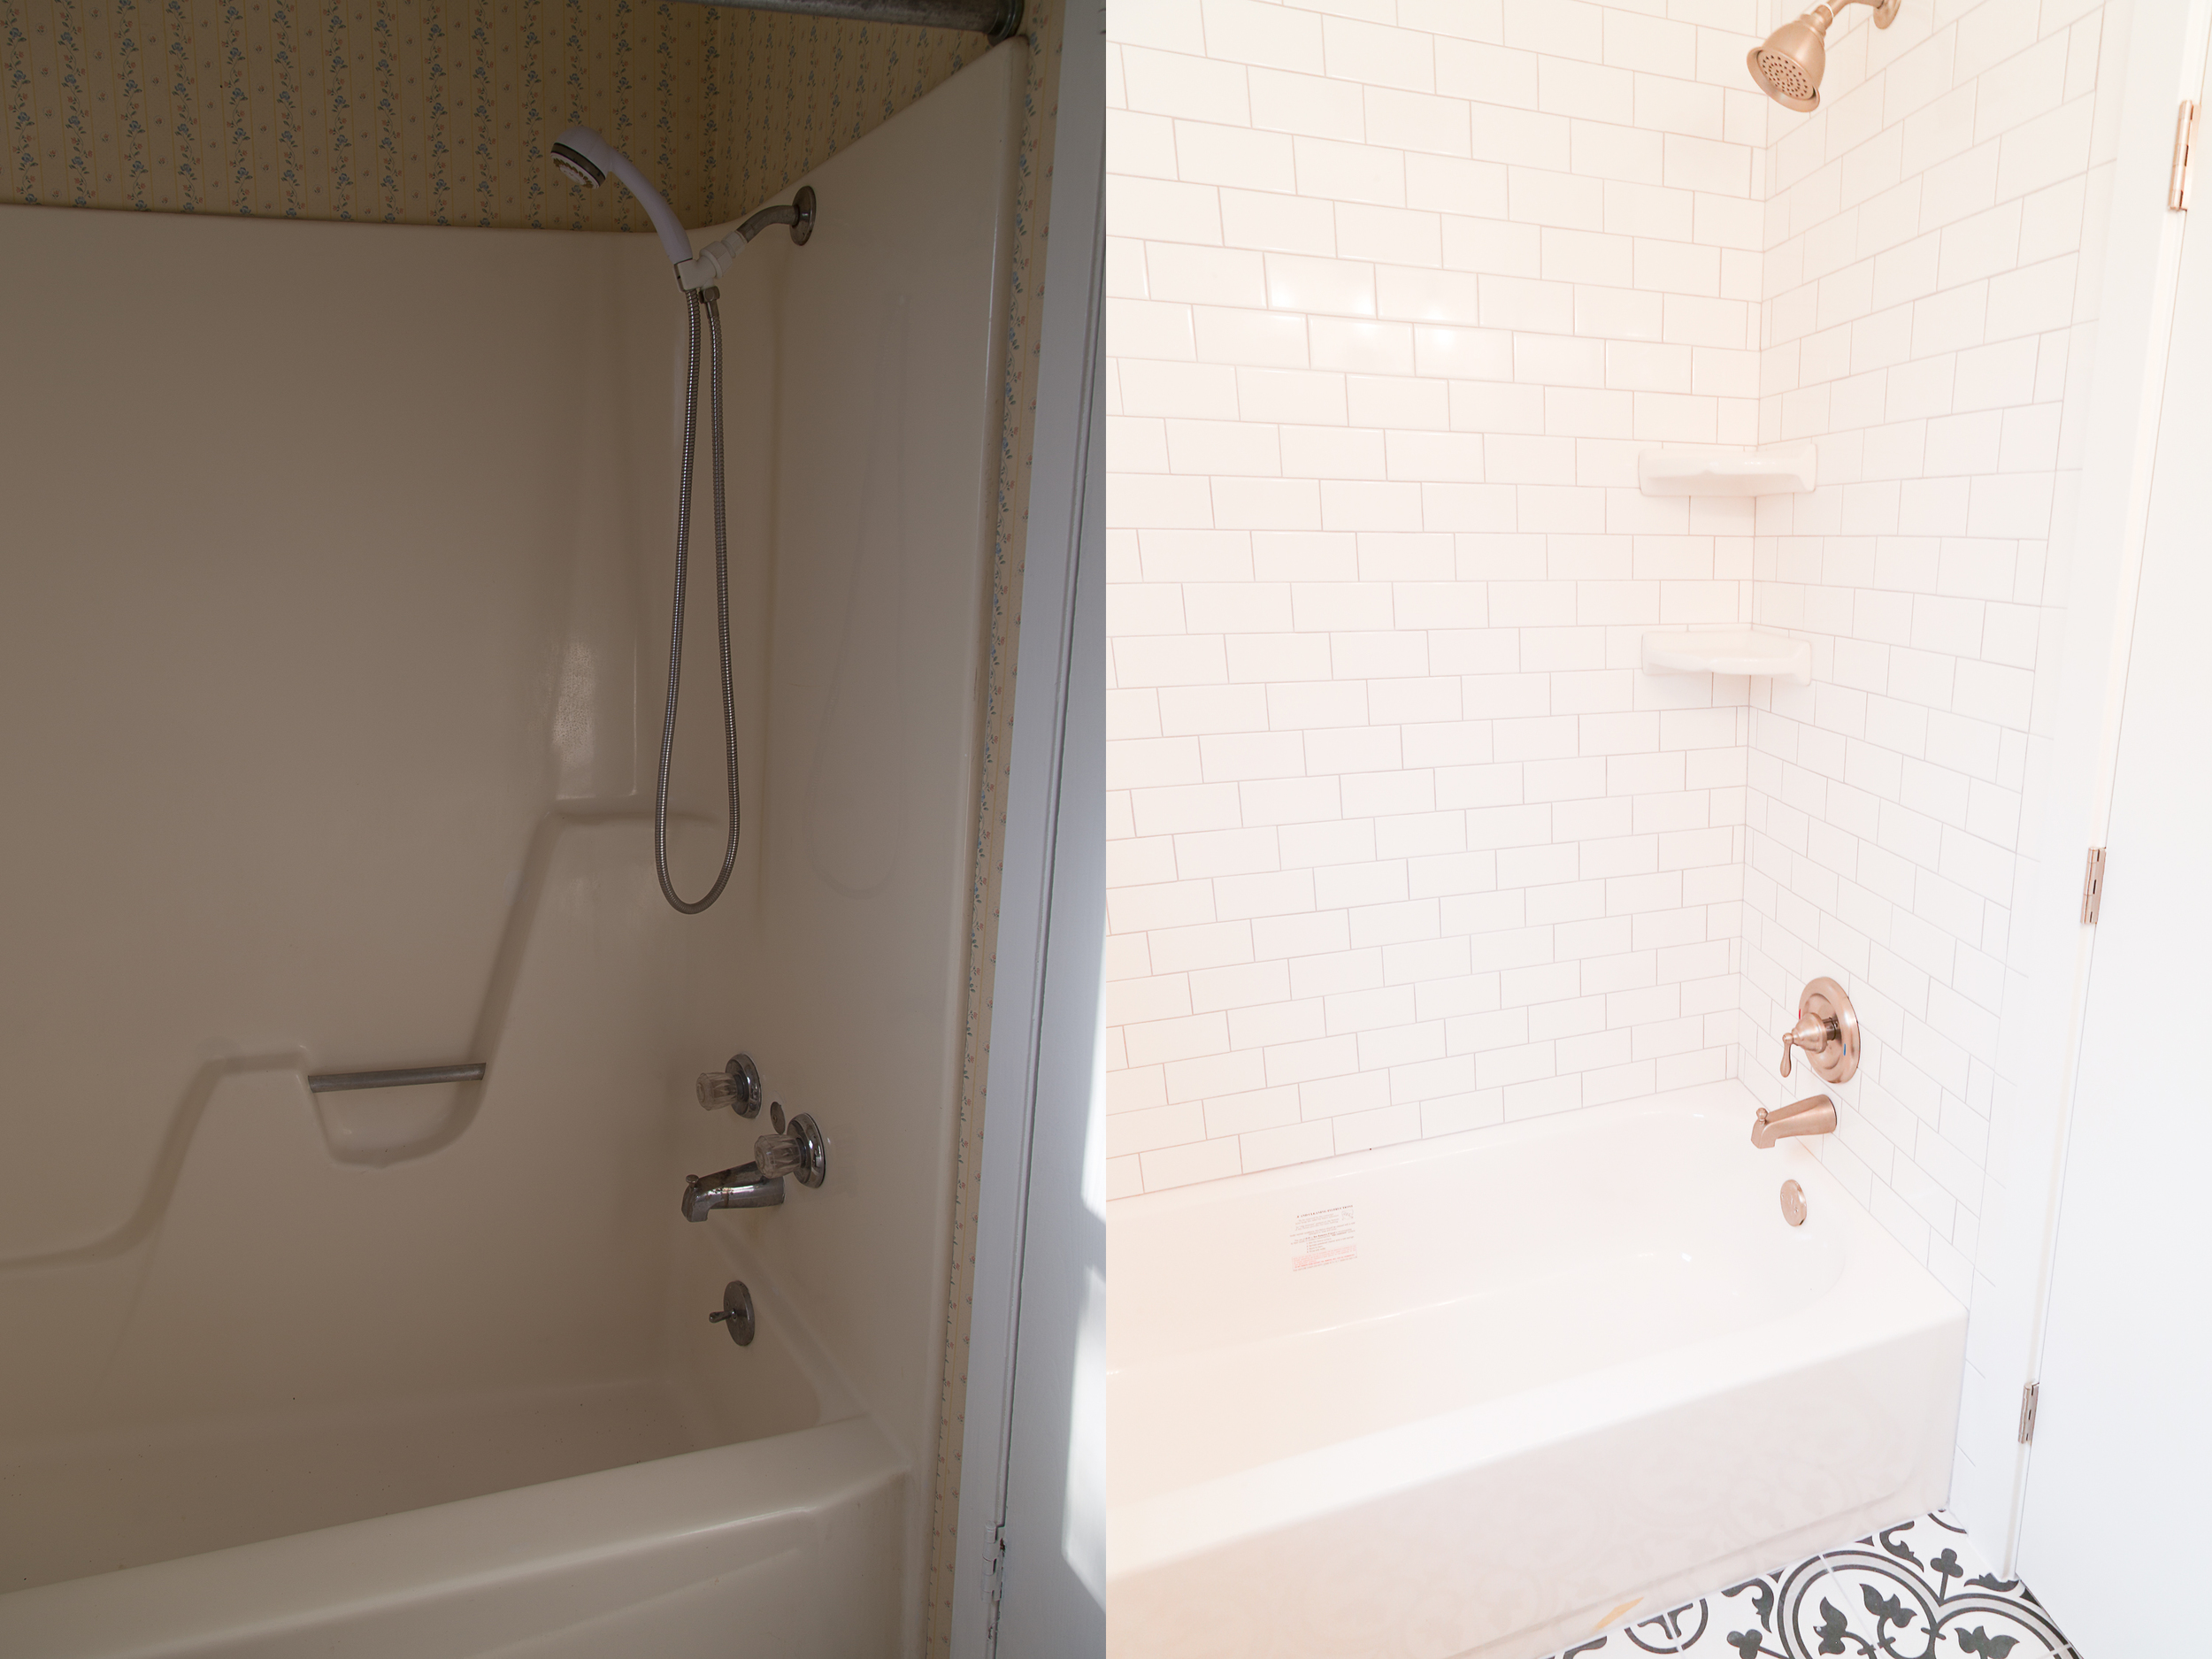 We added a new tub and used subway tile with a silver/grey grout for this guest bathroom!